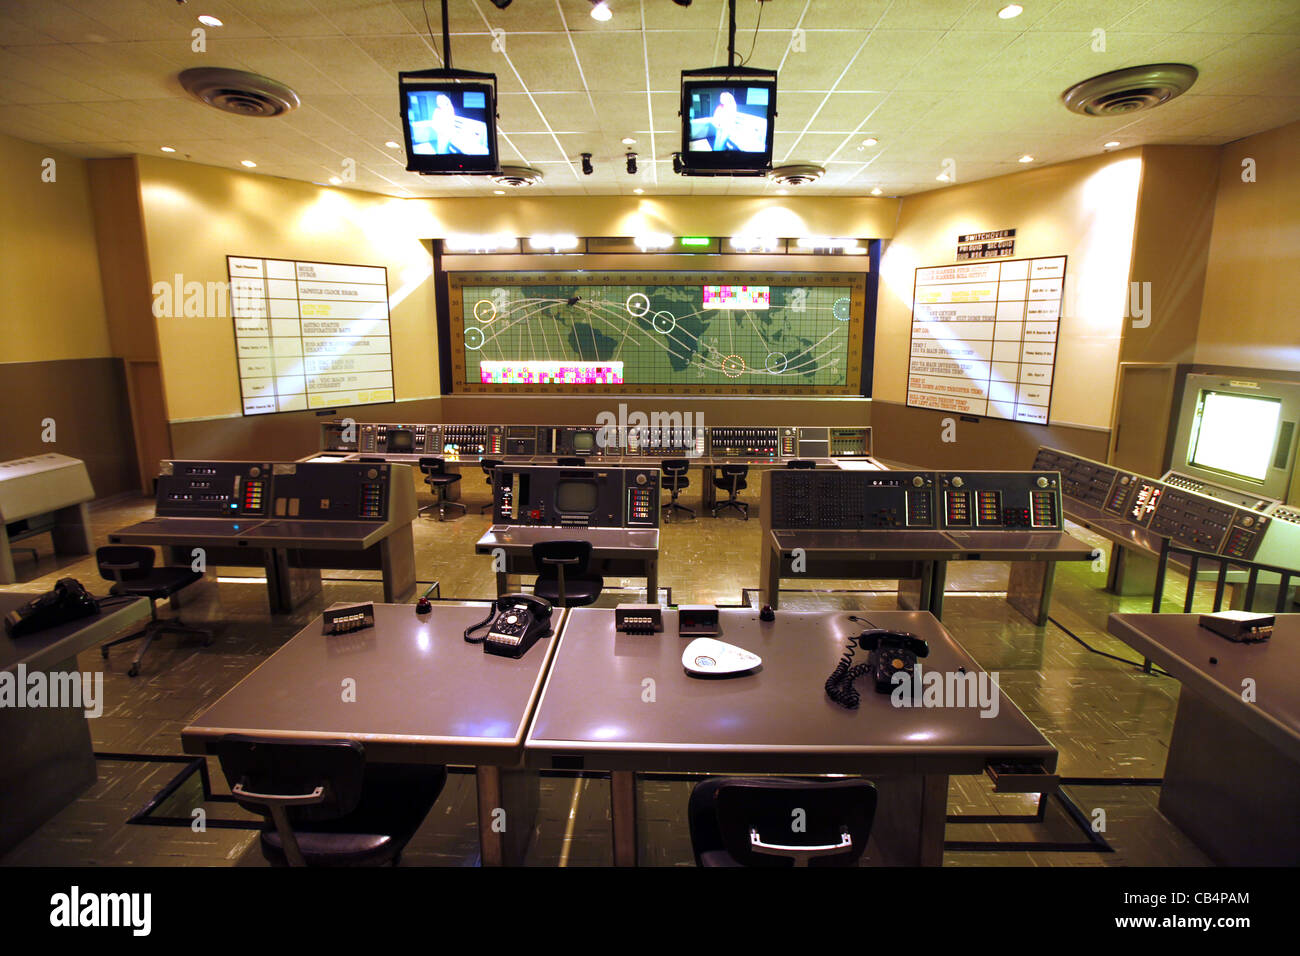 Kennedy Space Center - Mercury Mission Control consoles - Stock Image